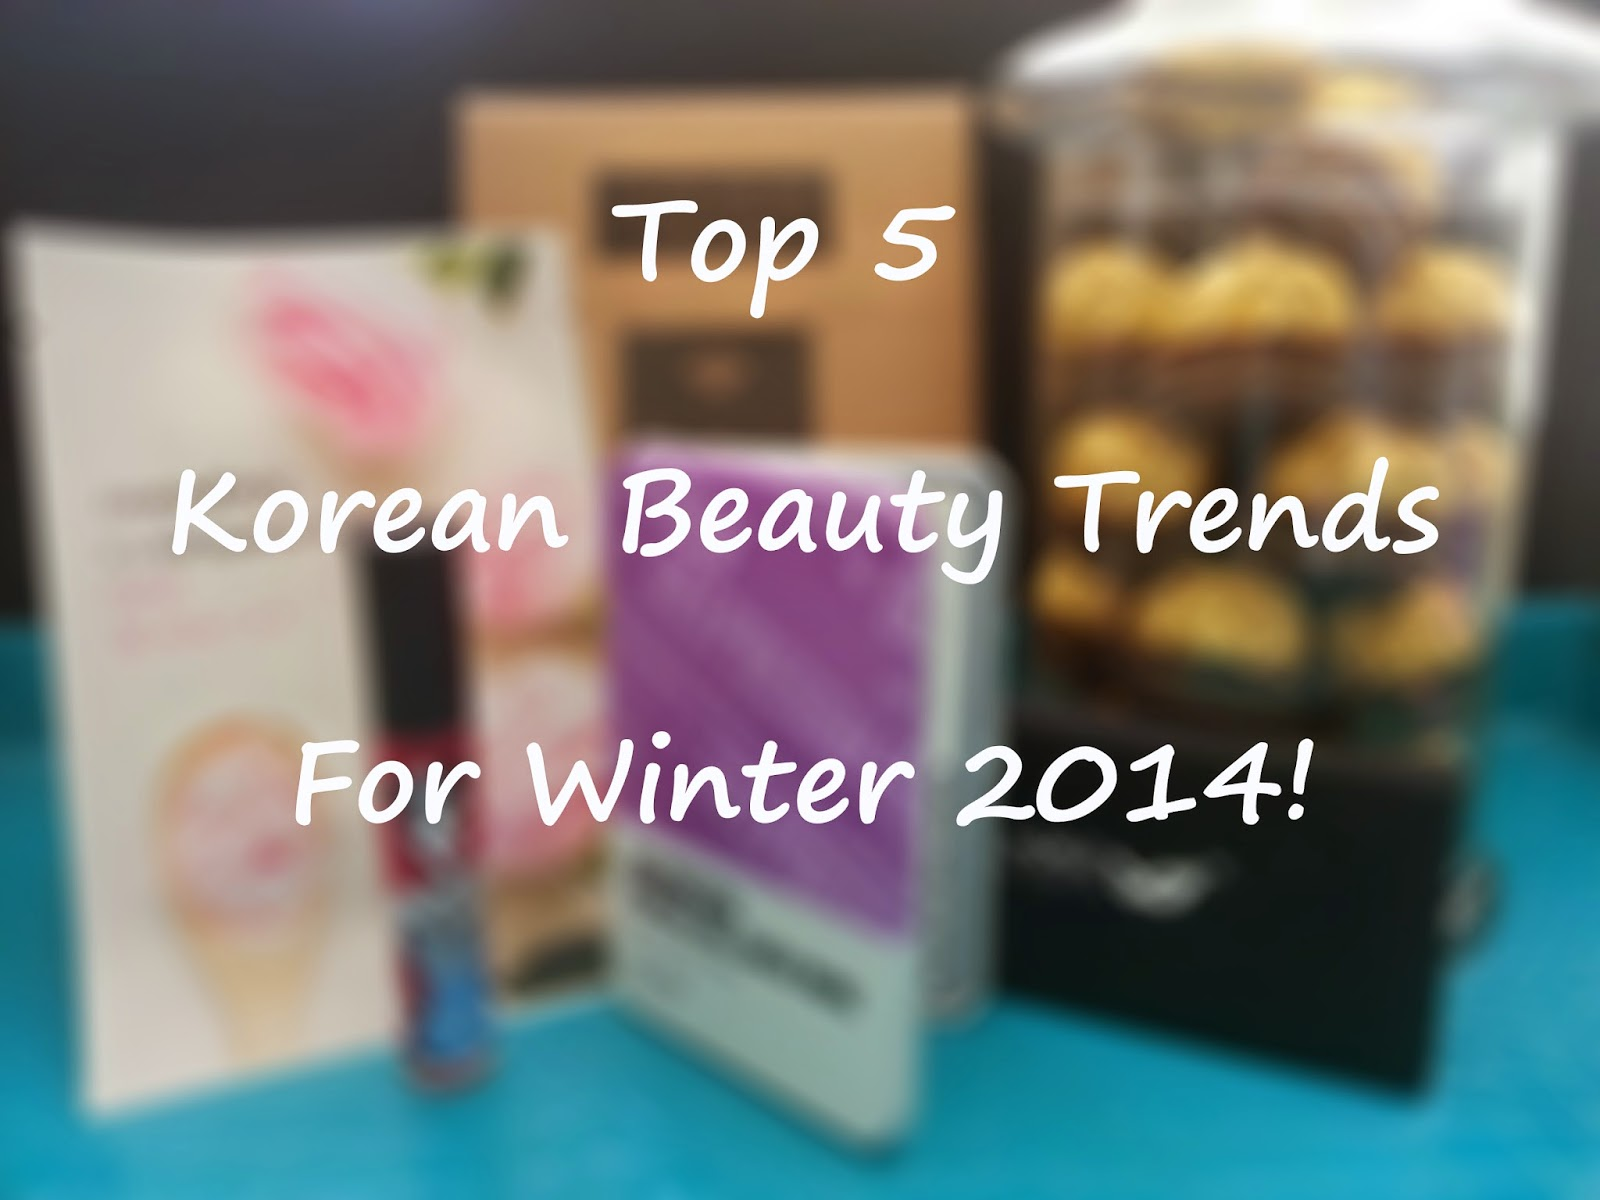 Top 5 Korean Beauty Trends For Winter 2014